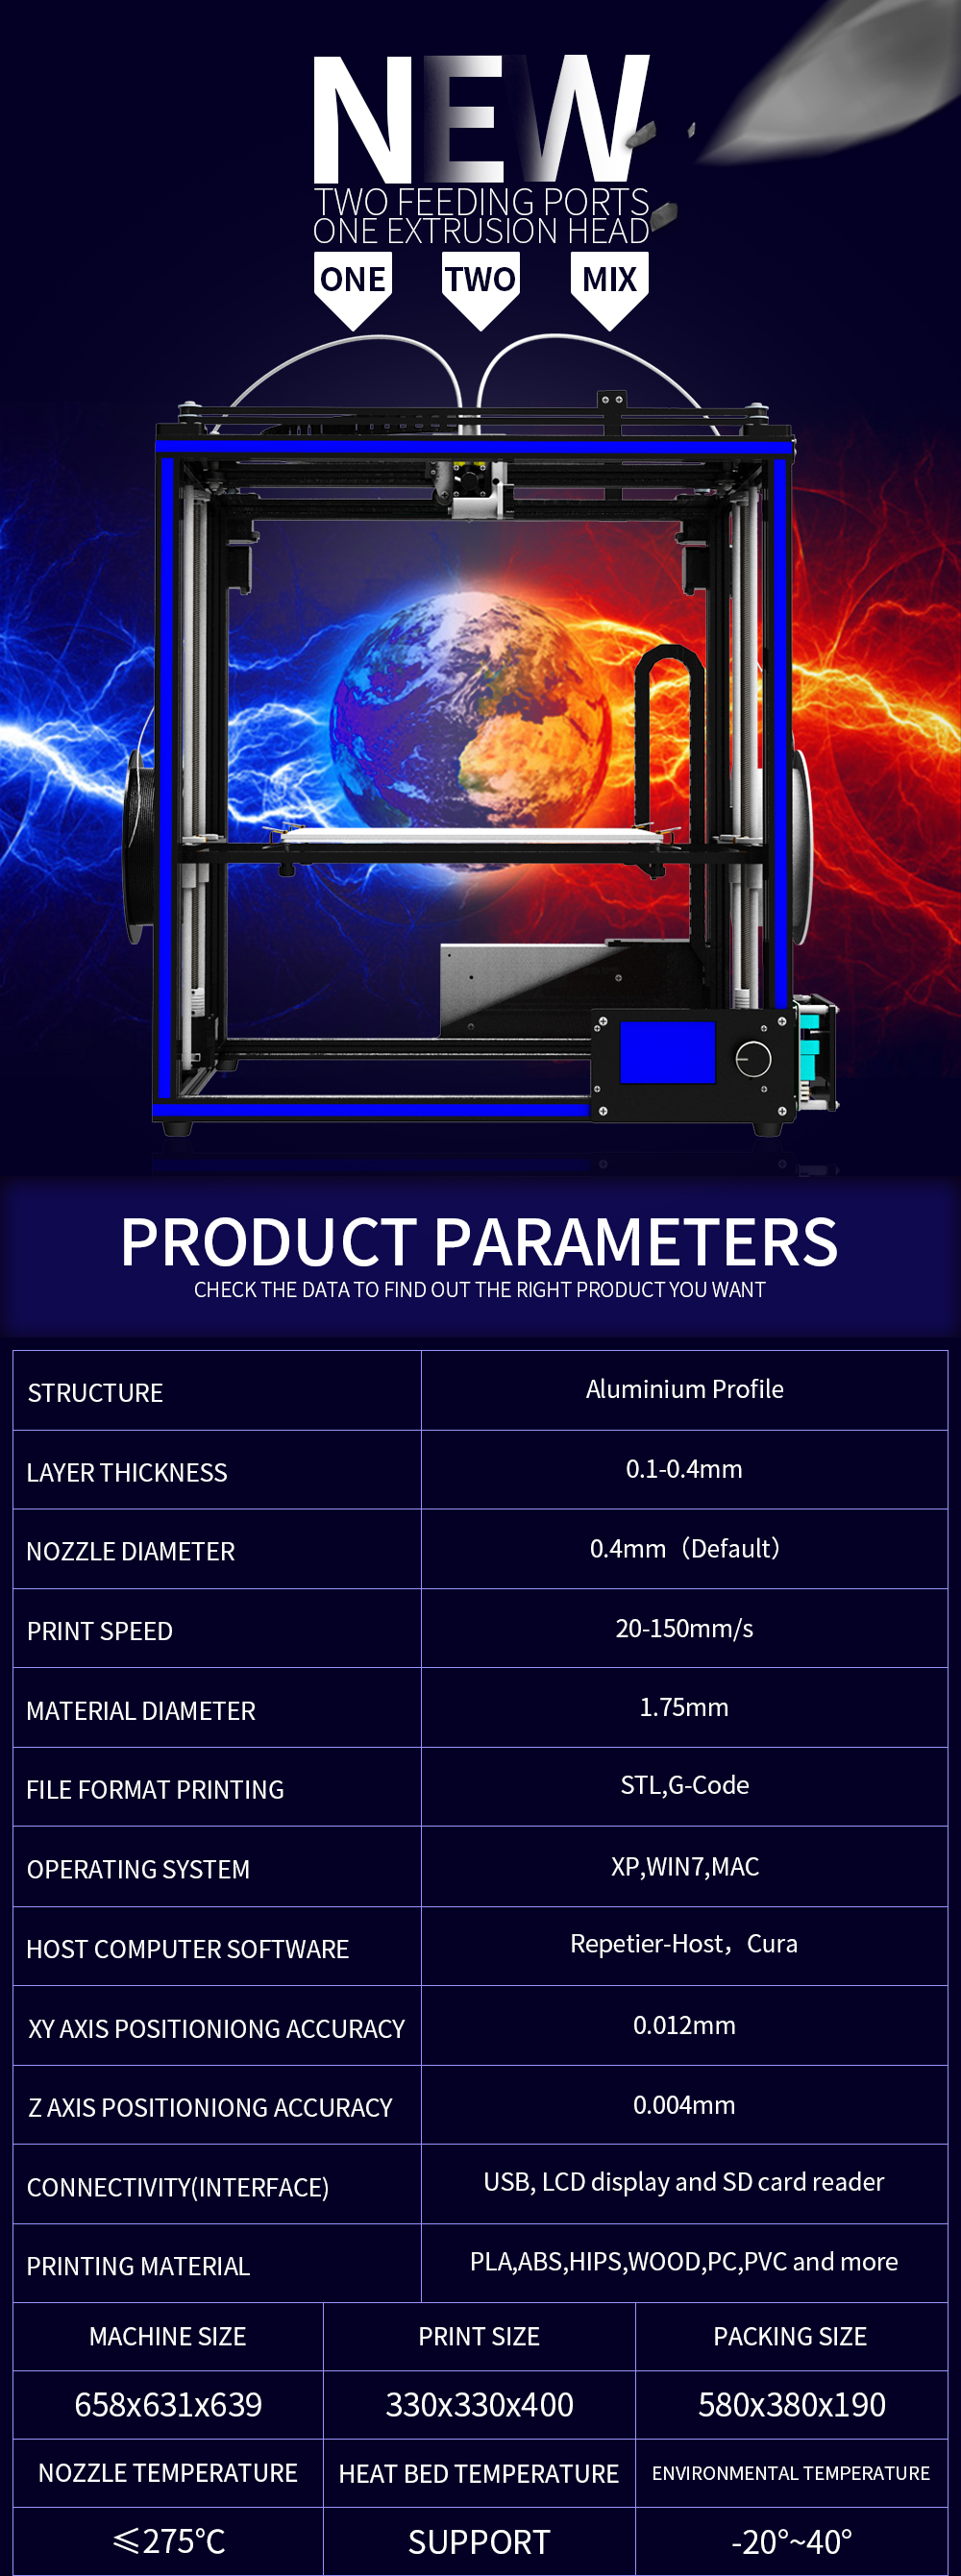 TRONXY® X5S-2E DIY Aluminium 3D Printer 330*330*400mm Printing Size Support Single/Dual/Mixed Color With Dual Z-axis Rod/Knob Button LCD Screen 6